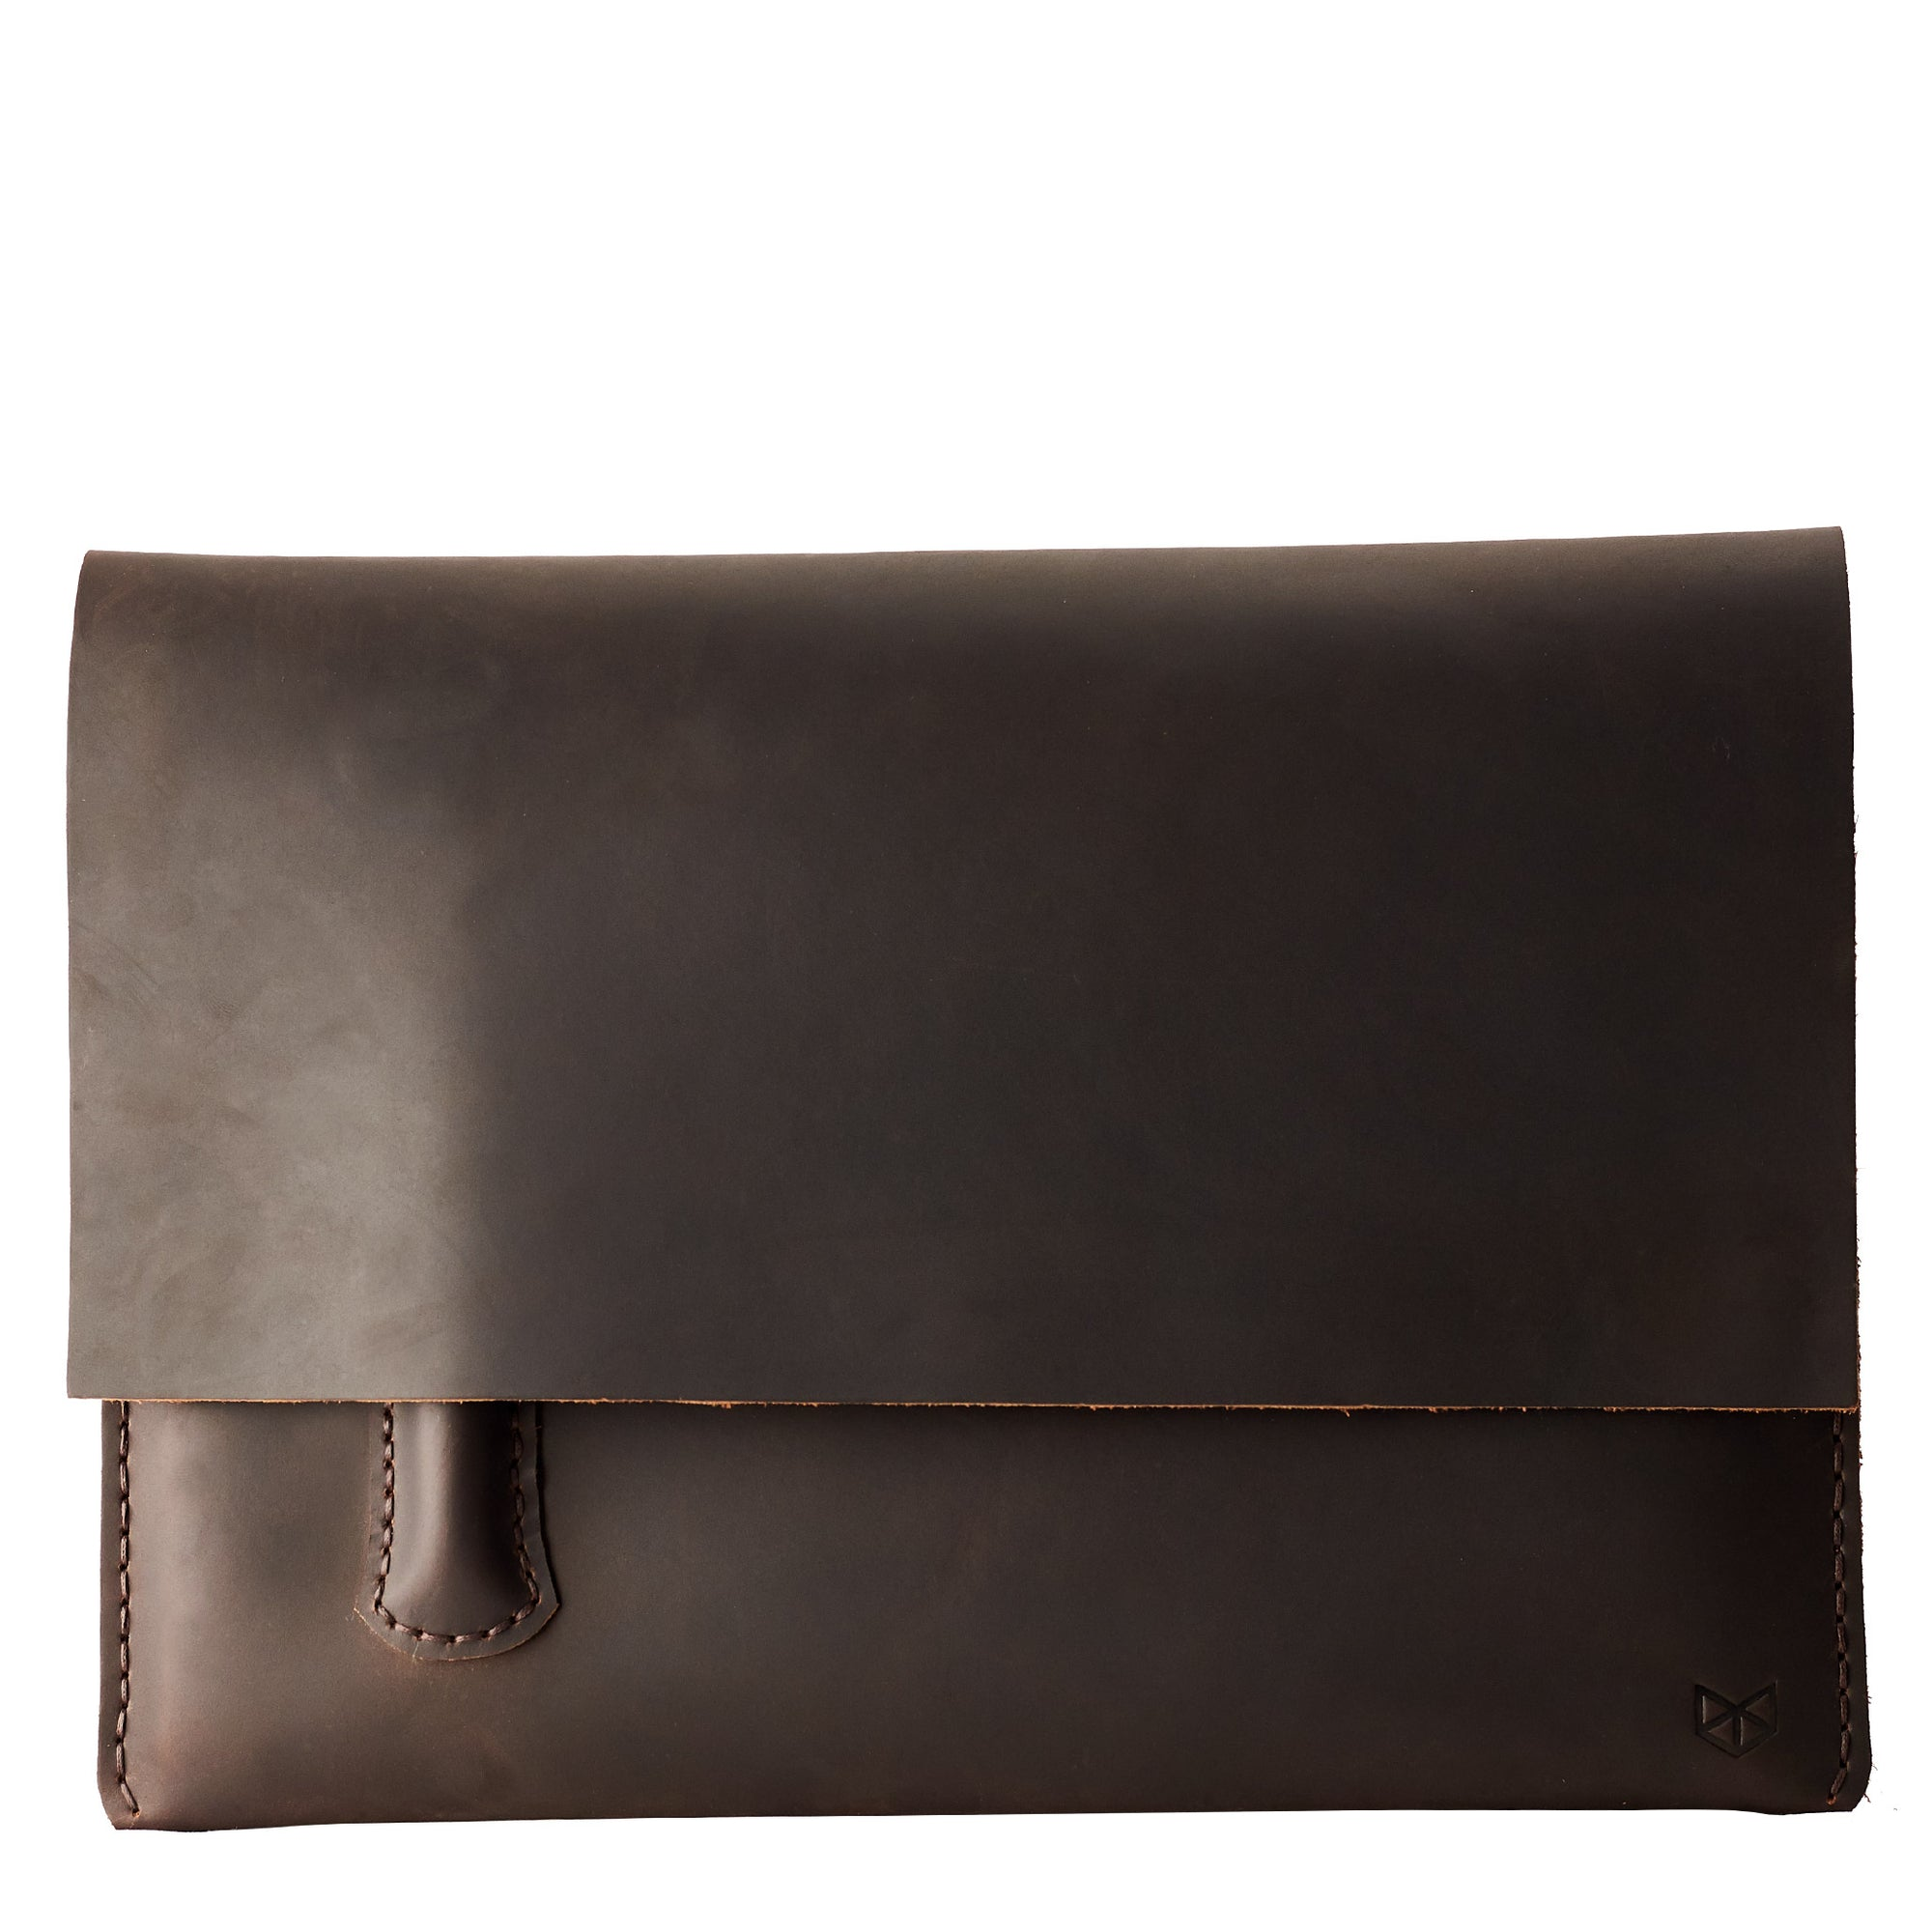 Google Pixelbook brown laptop sleeve with pencil holder